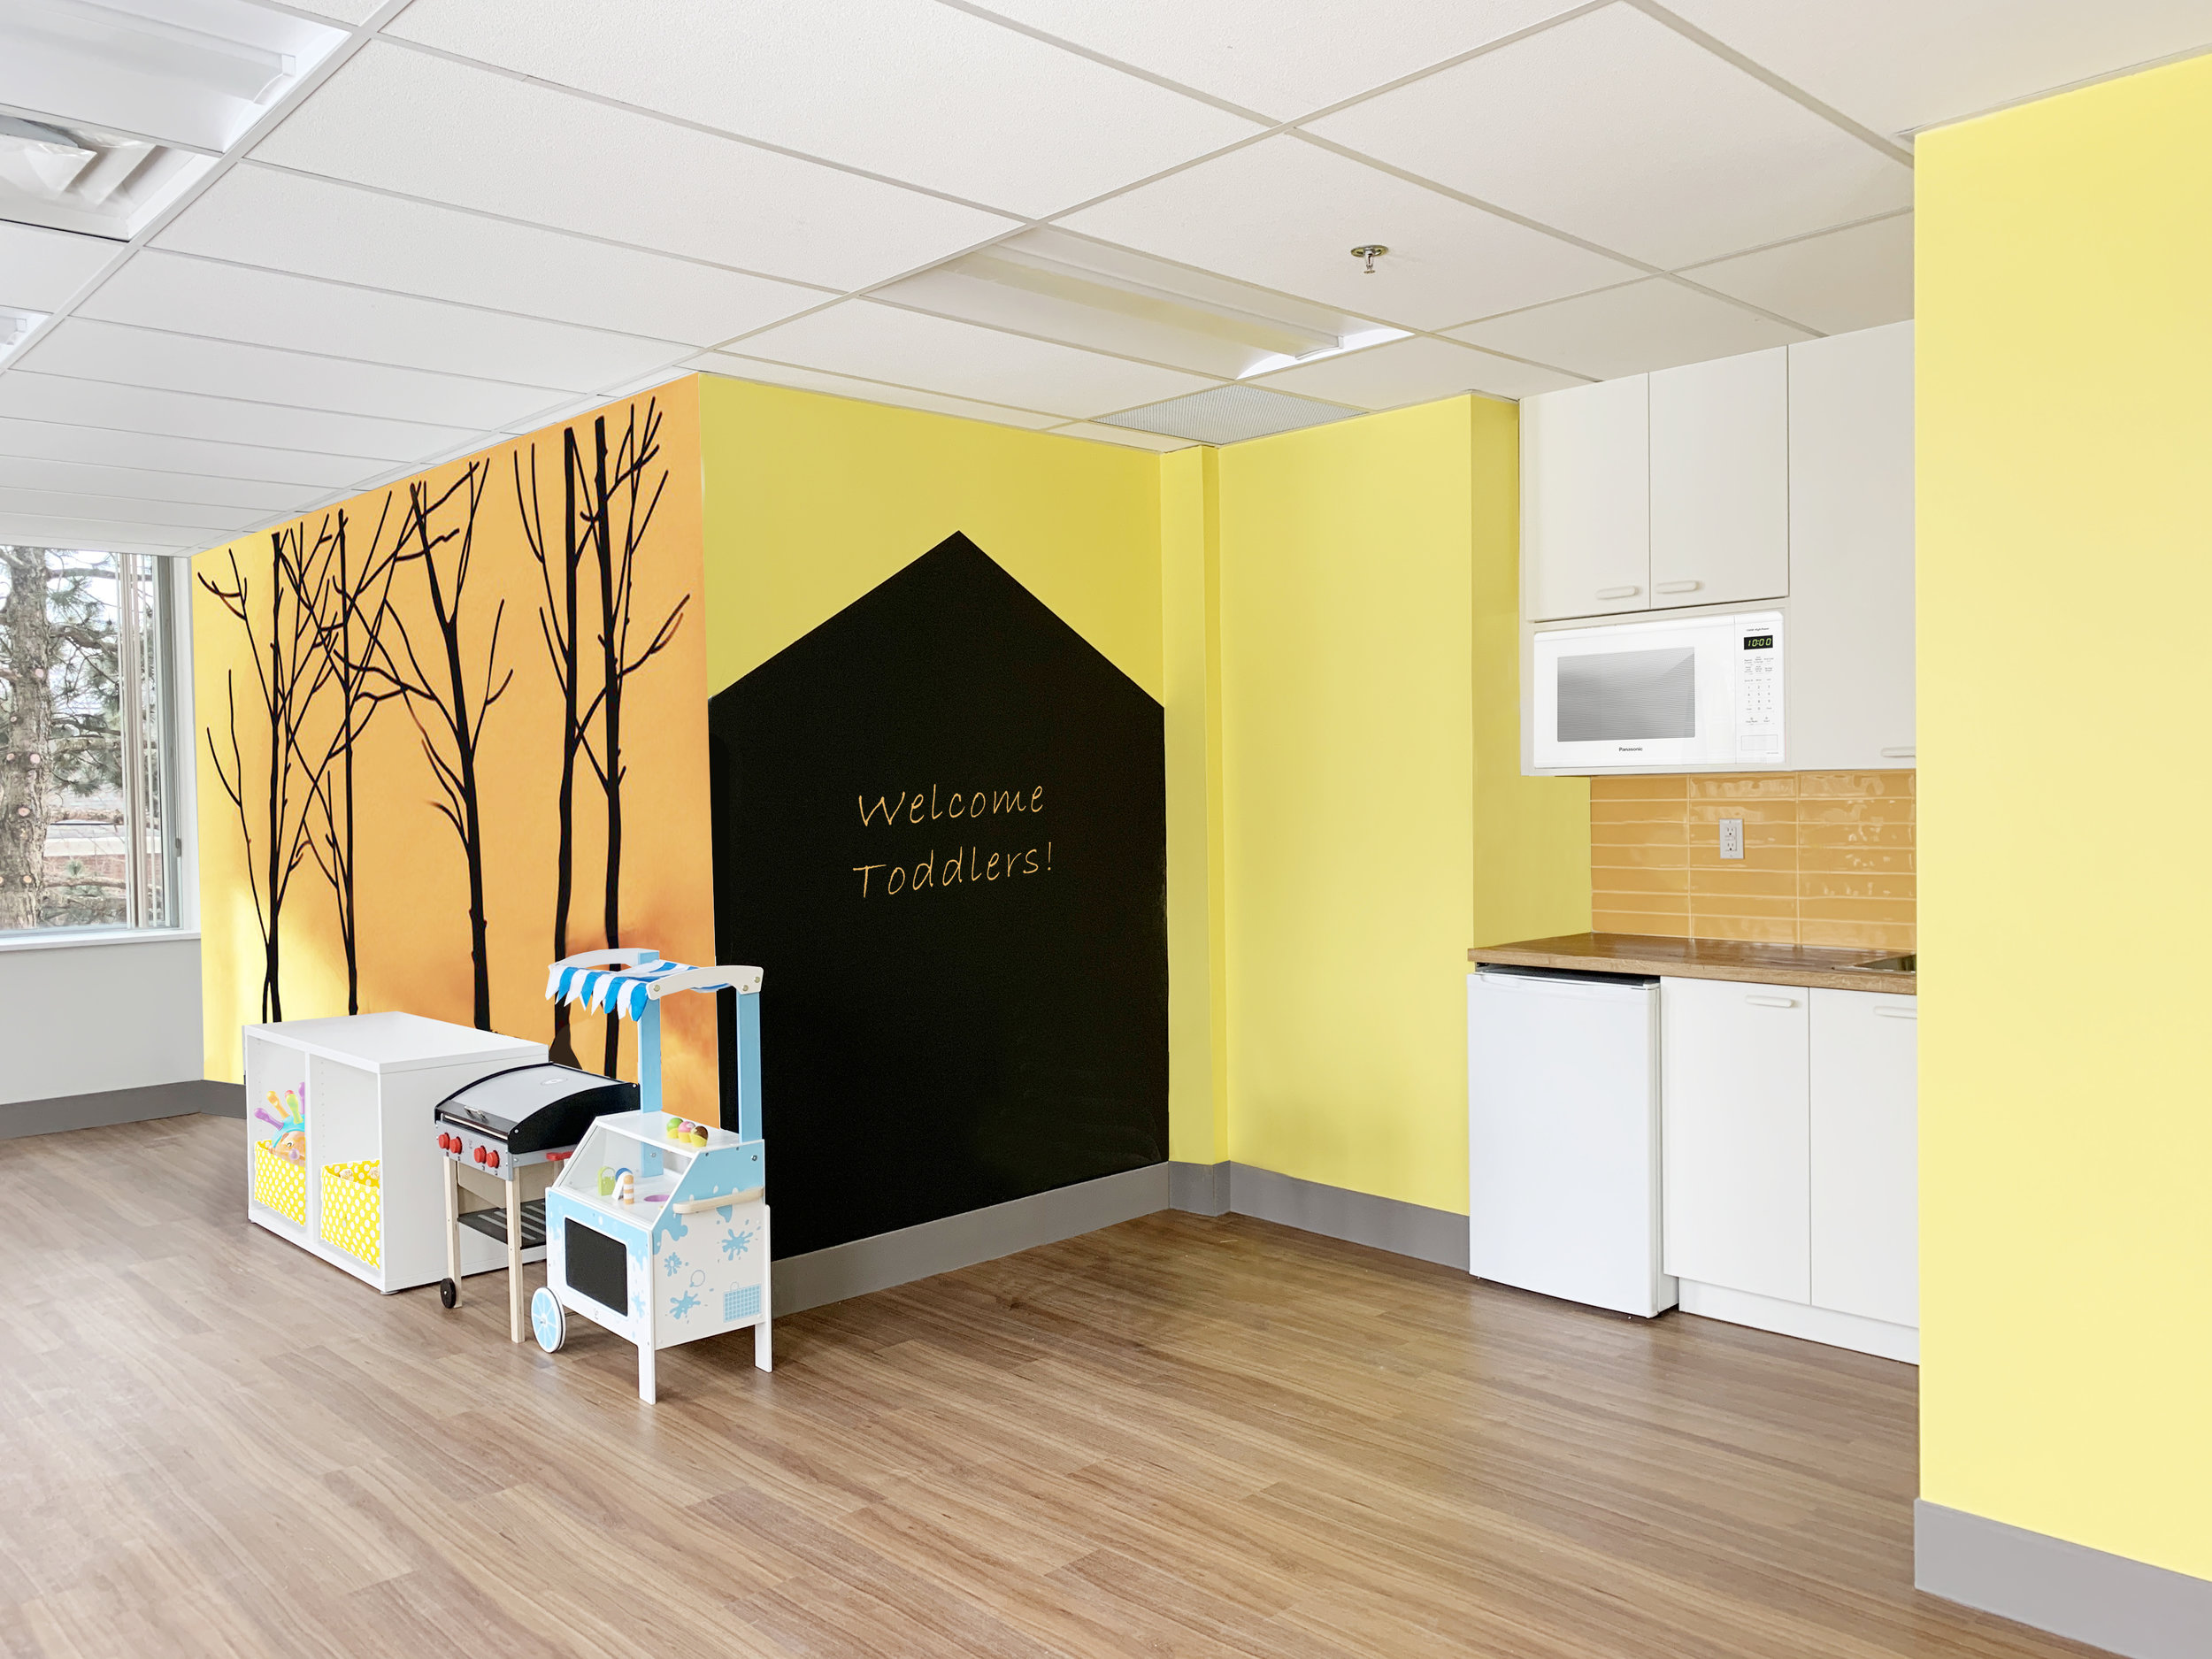 Canada_Toronto_Daycare_Design_architect_classroom_kitchen.jpg